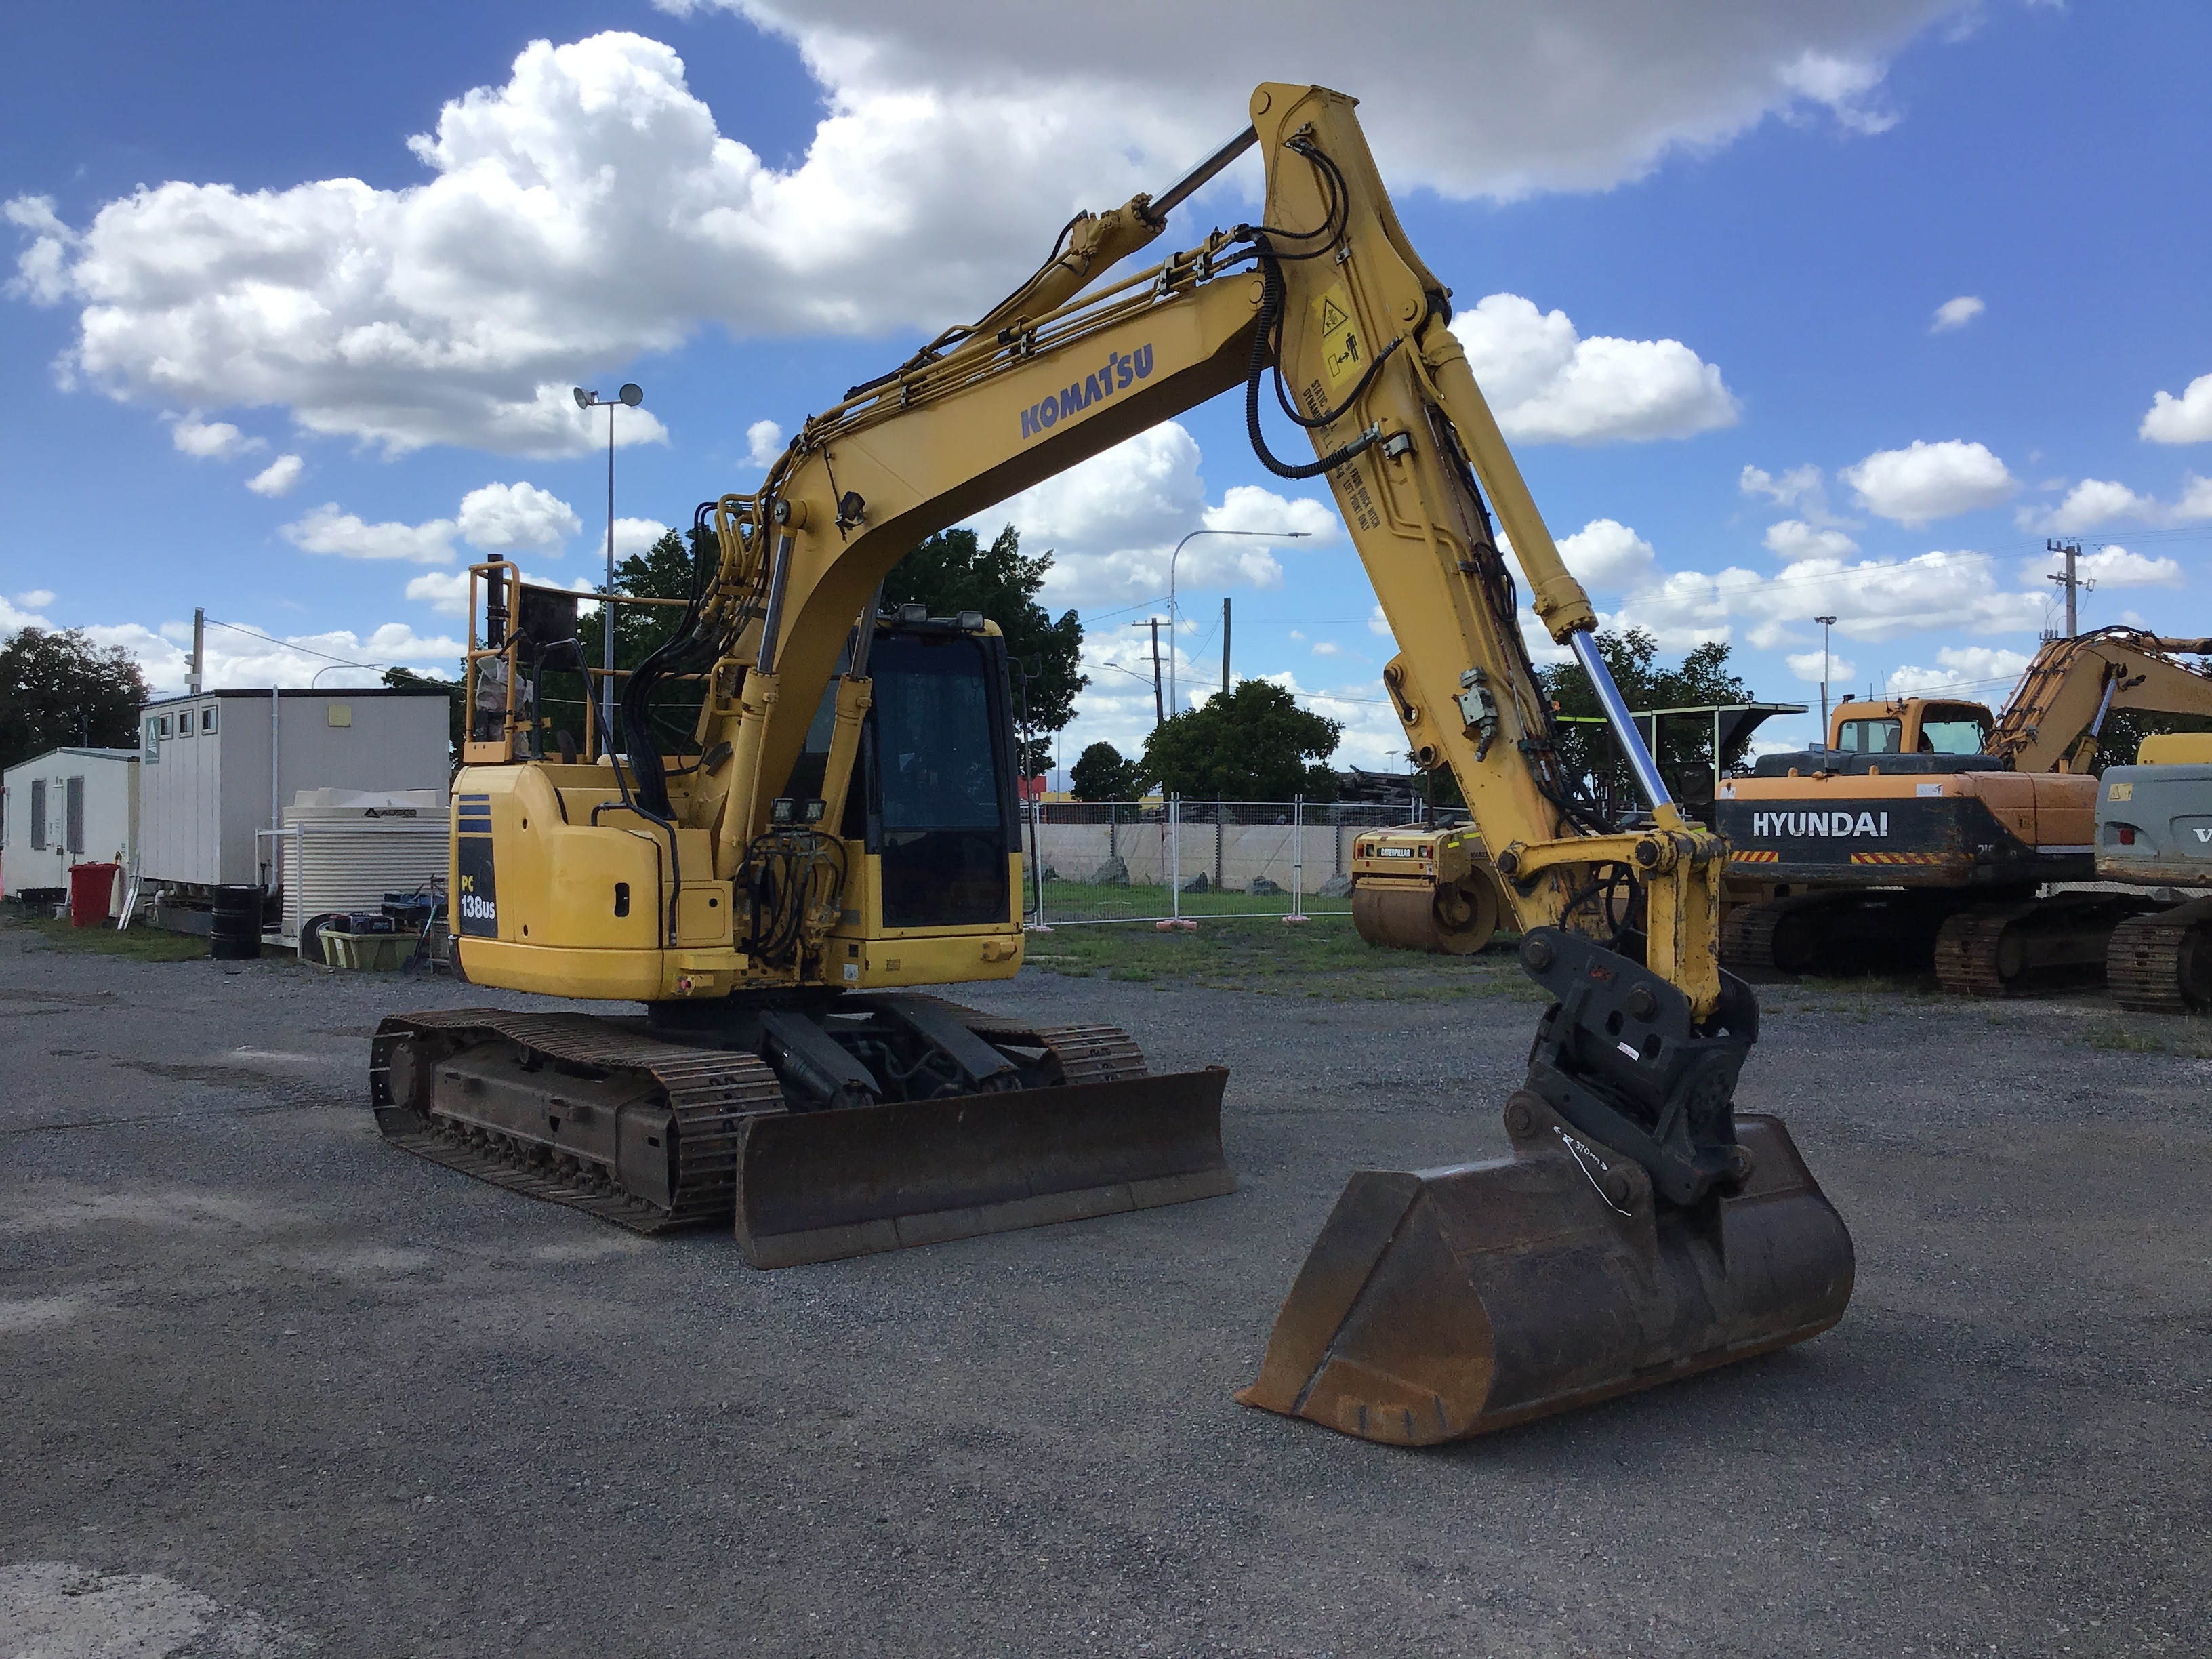 2012 Komatsu PC138US-8 Hydraulic Excavator with Trimble GPS Wiring